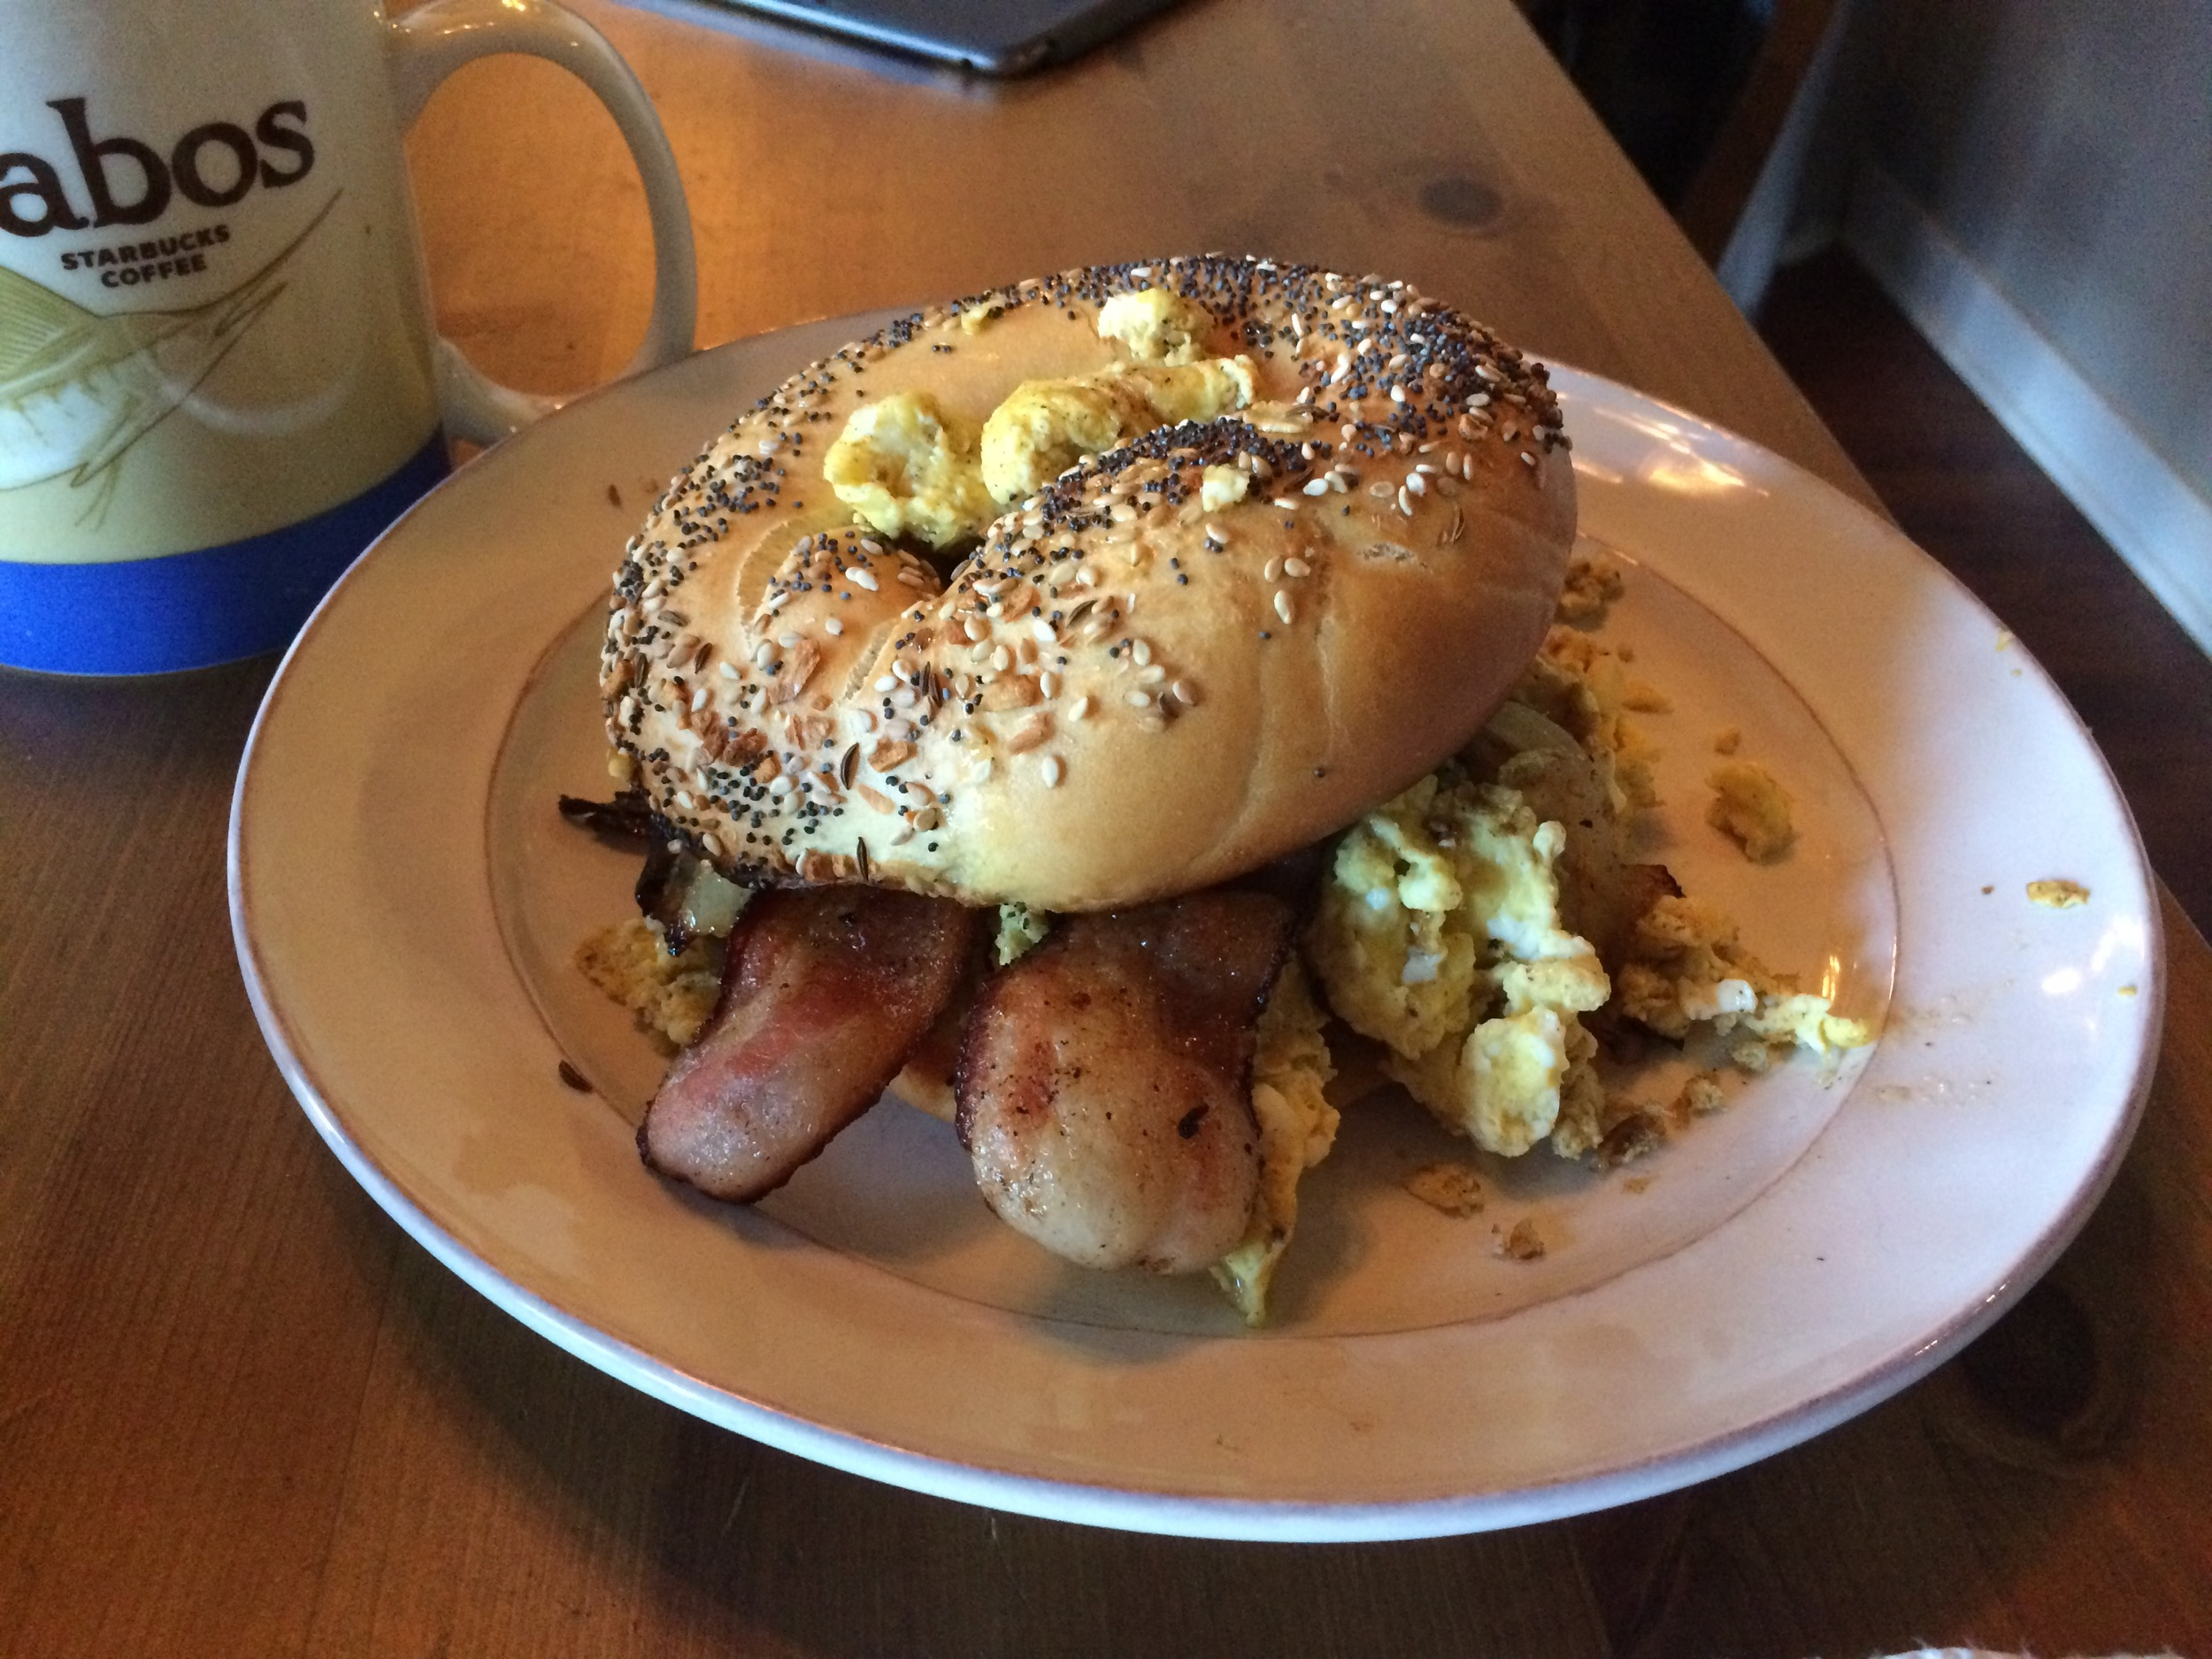 #baconeggandcheese #everythingbagels #bagelflats #mughoarder #starbucks #dreamingofcabo